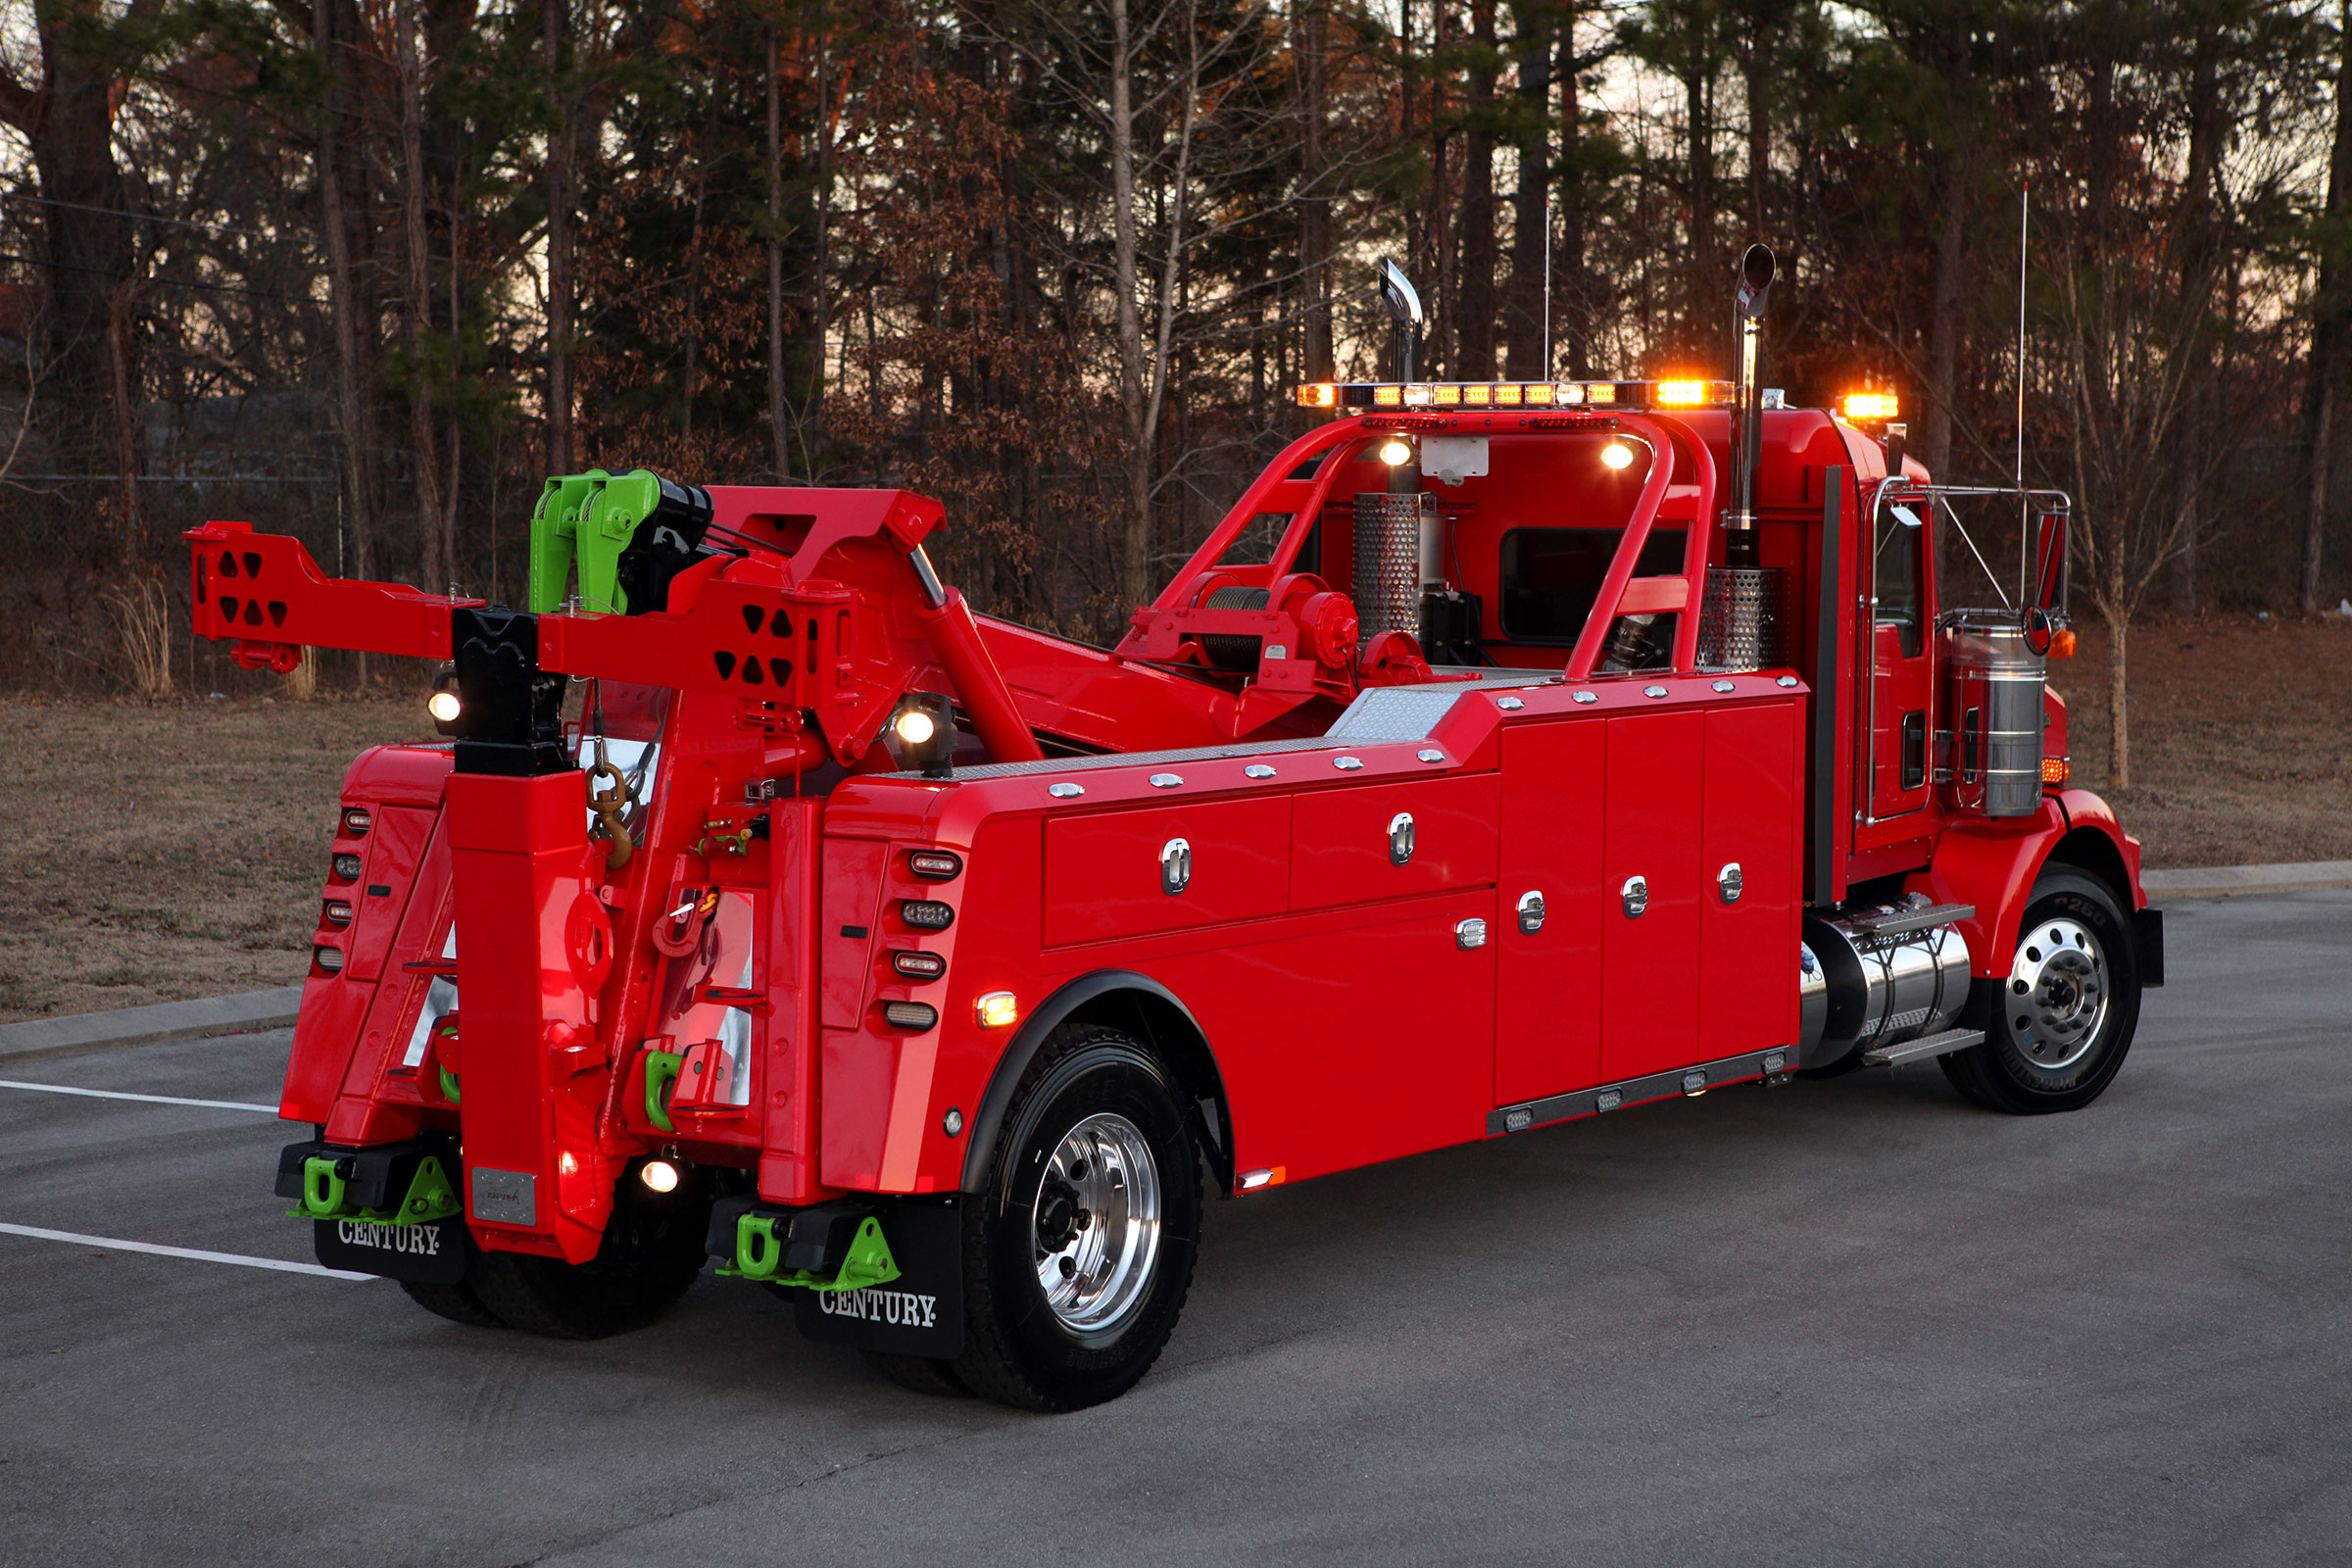 Century 5130 Large Wrecker